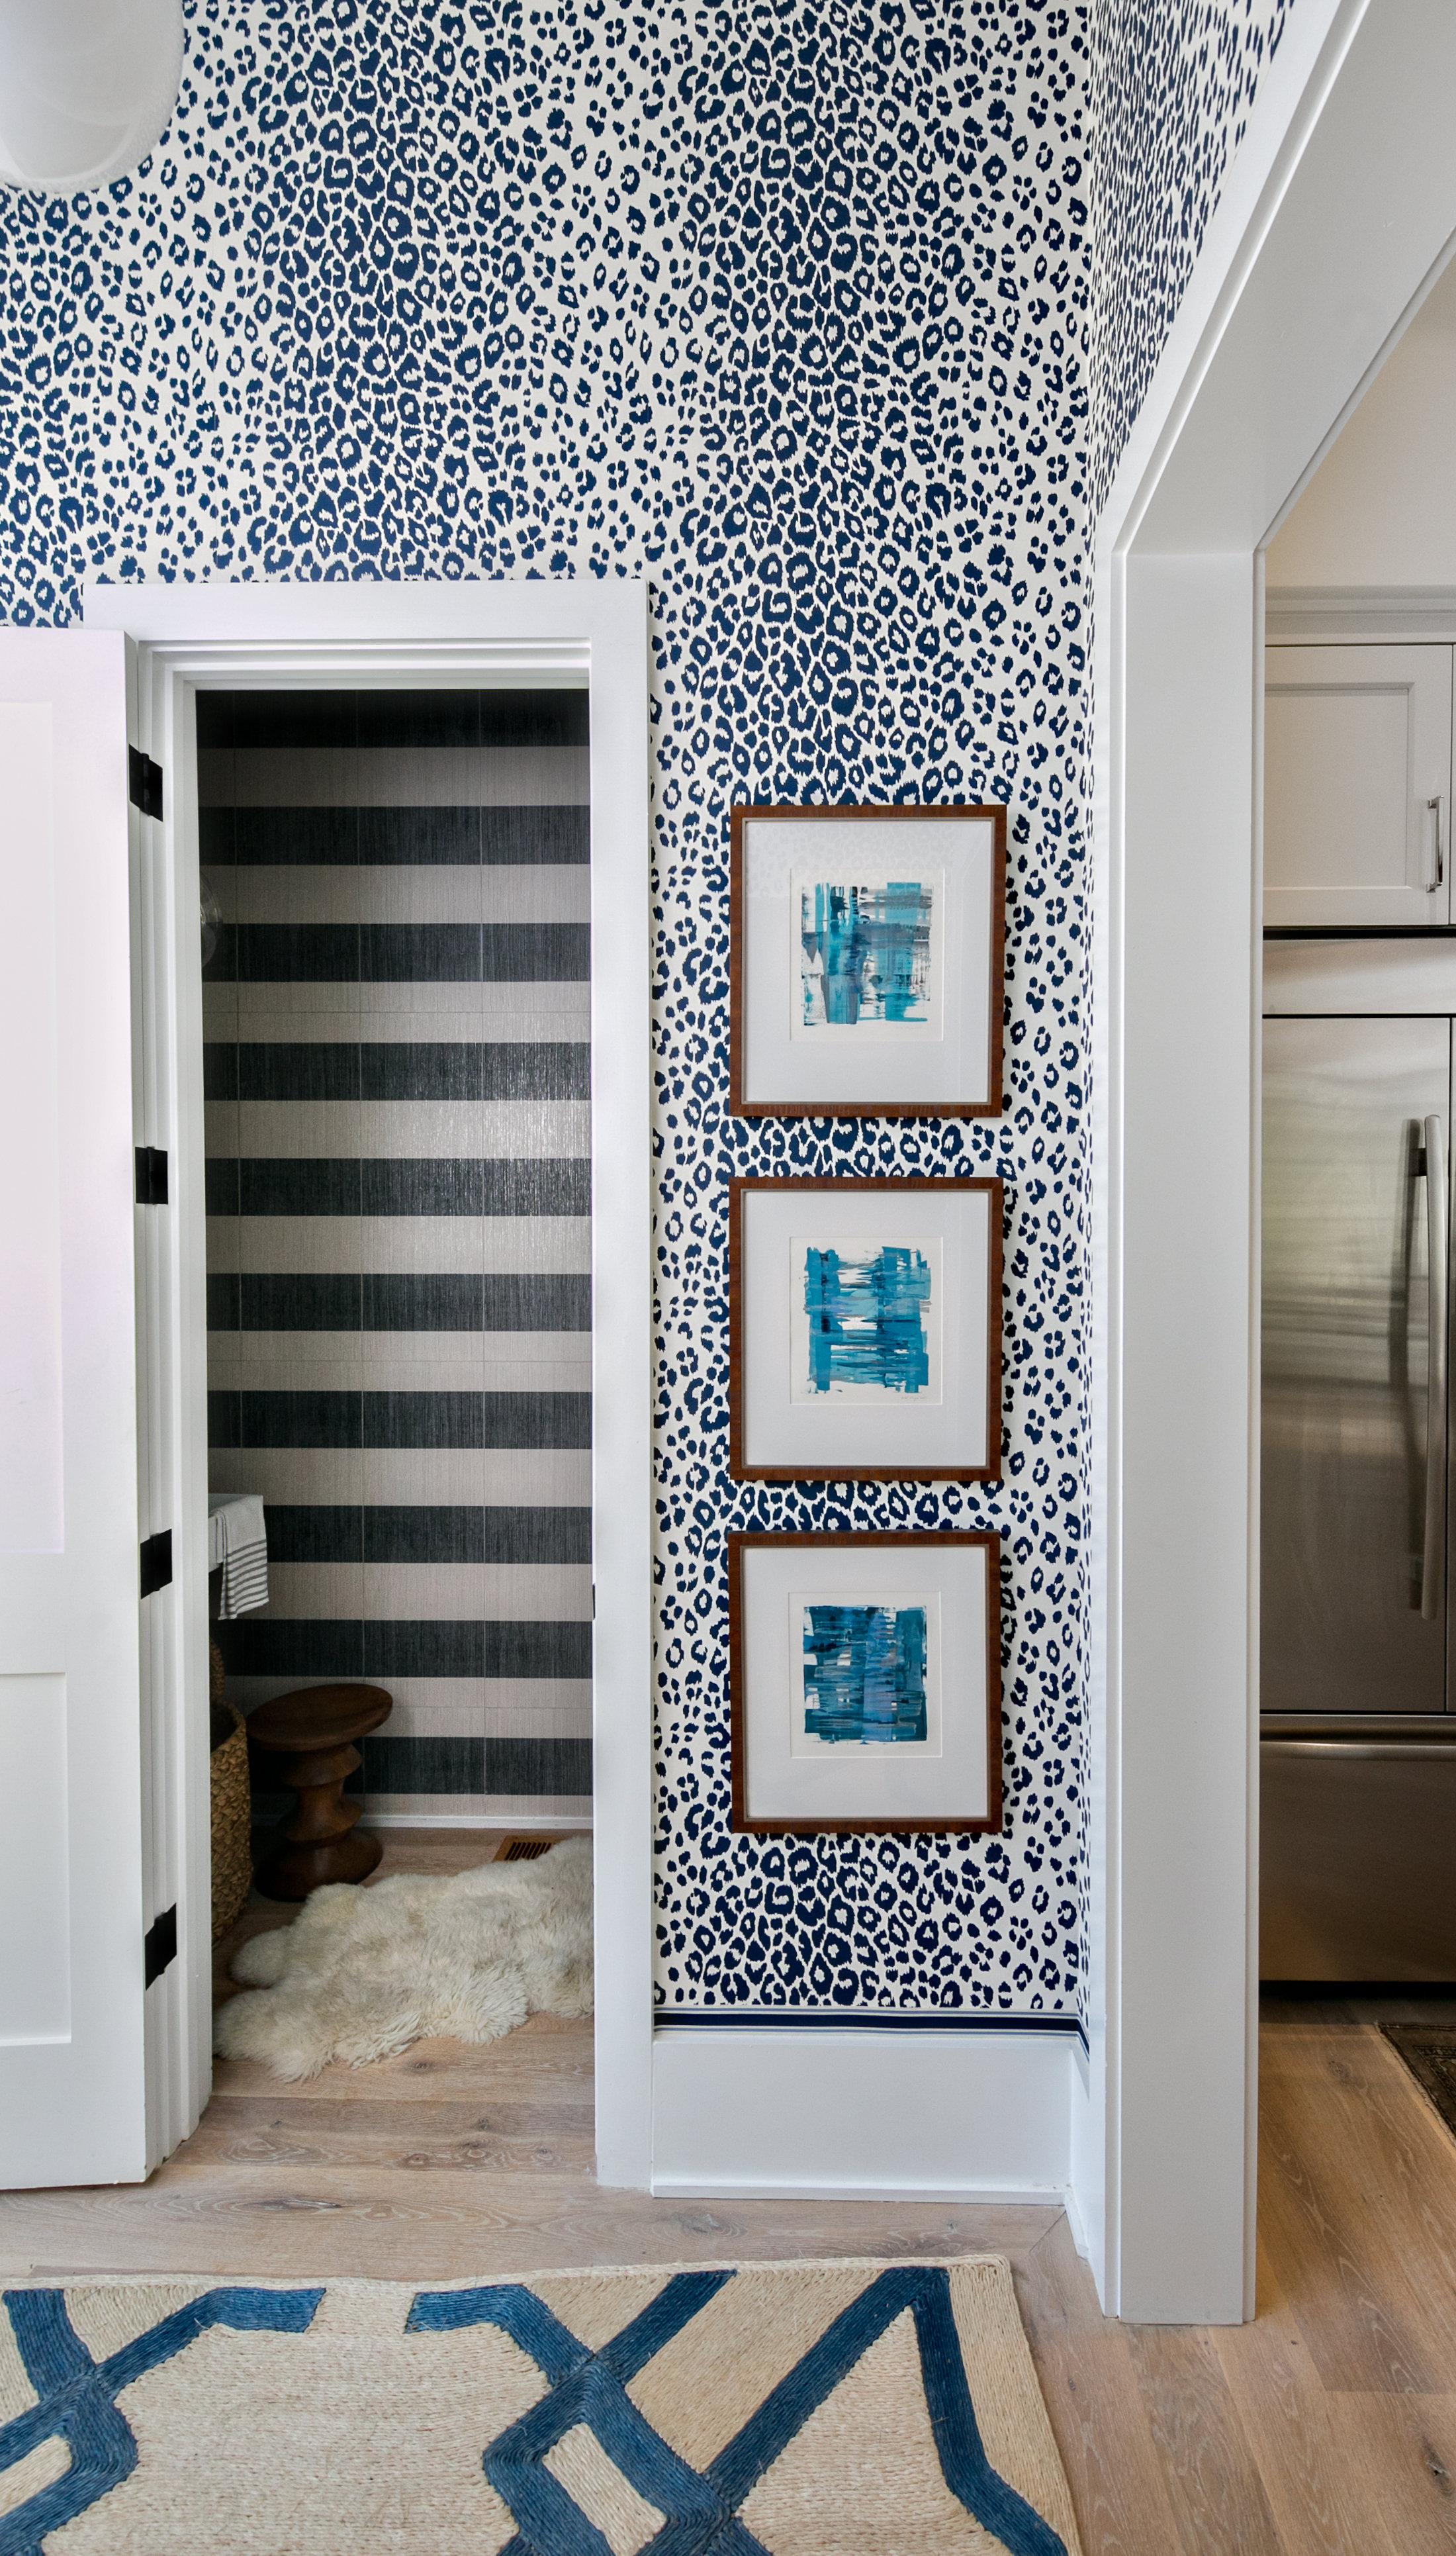 The wallpaper is Schumacher Iconic Leopard and the art is by San Francisco artist Chloe Meyer.